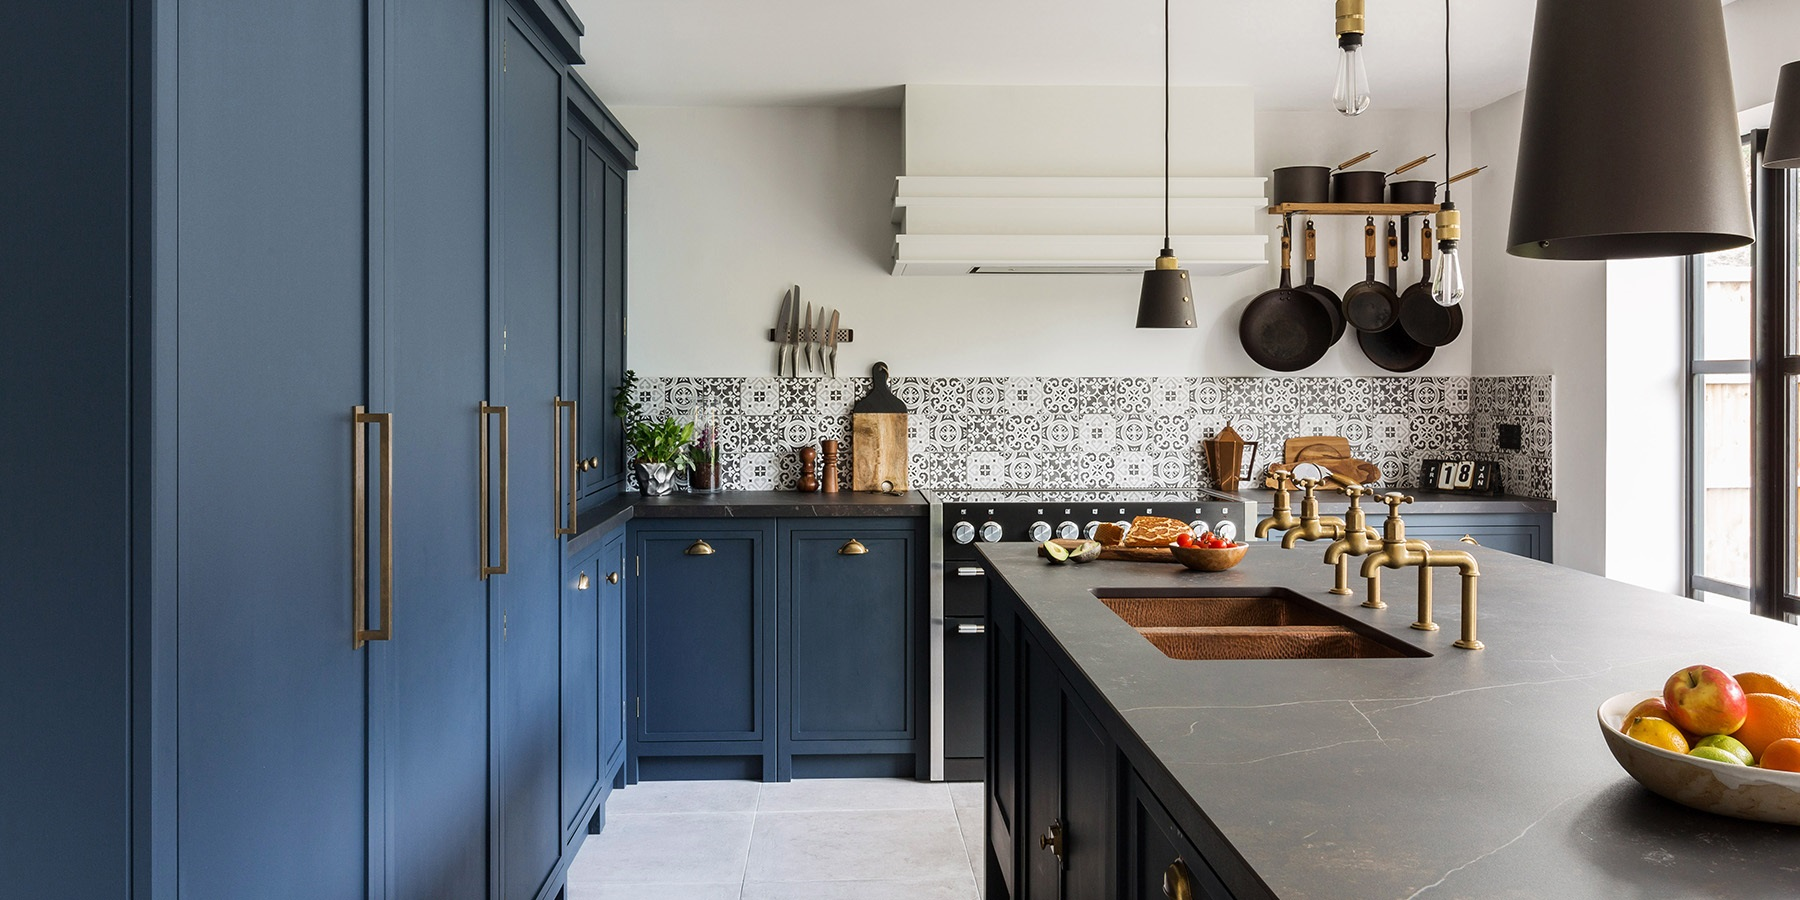 Industrial Navy Blue Shaker Kitchen - Burlanes bespoke Decolane kitchen with Dekton worktops and amazing copper sink with Perrin & Rowe taps.